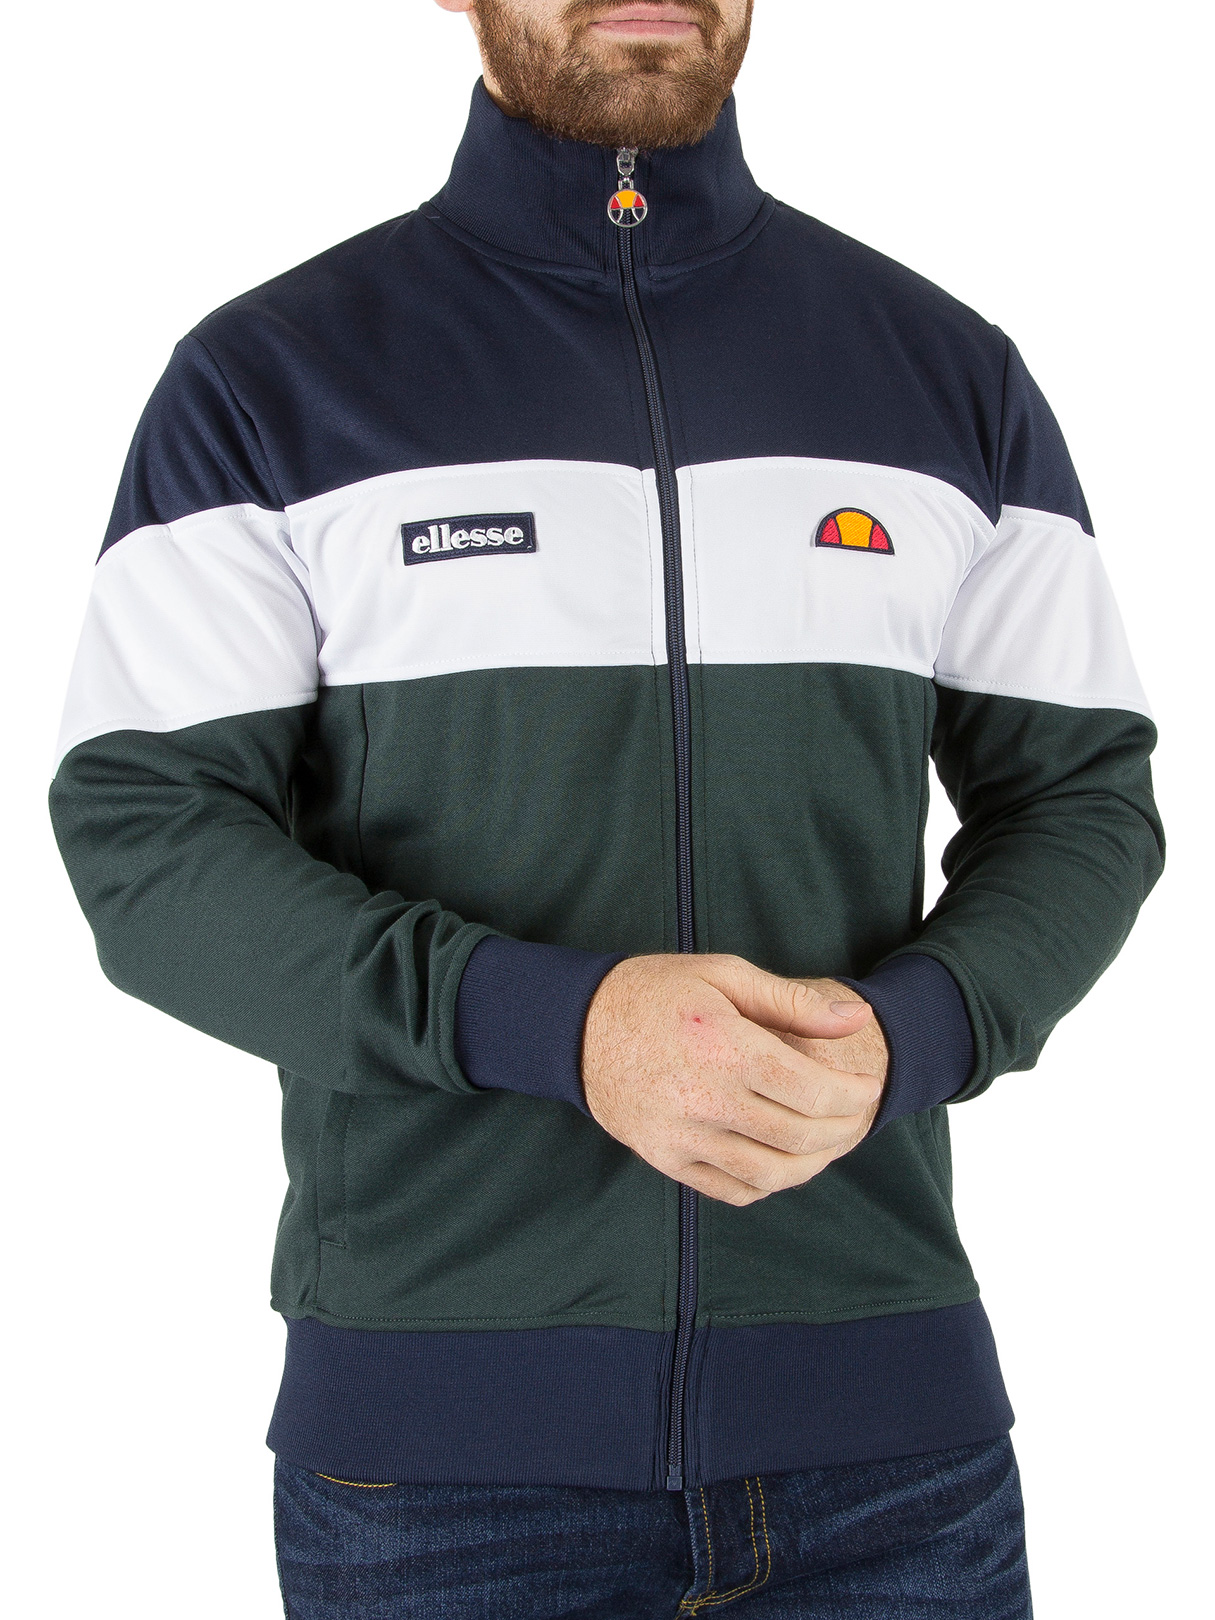 ellesse herren caprini panel tracktop jacke blau ebay. Black Bedroom Furniture Sets. Home Design Ideas